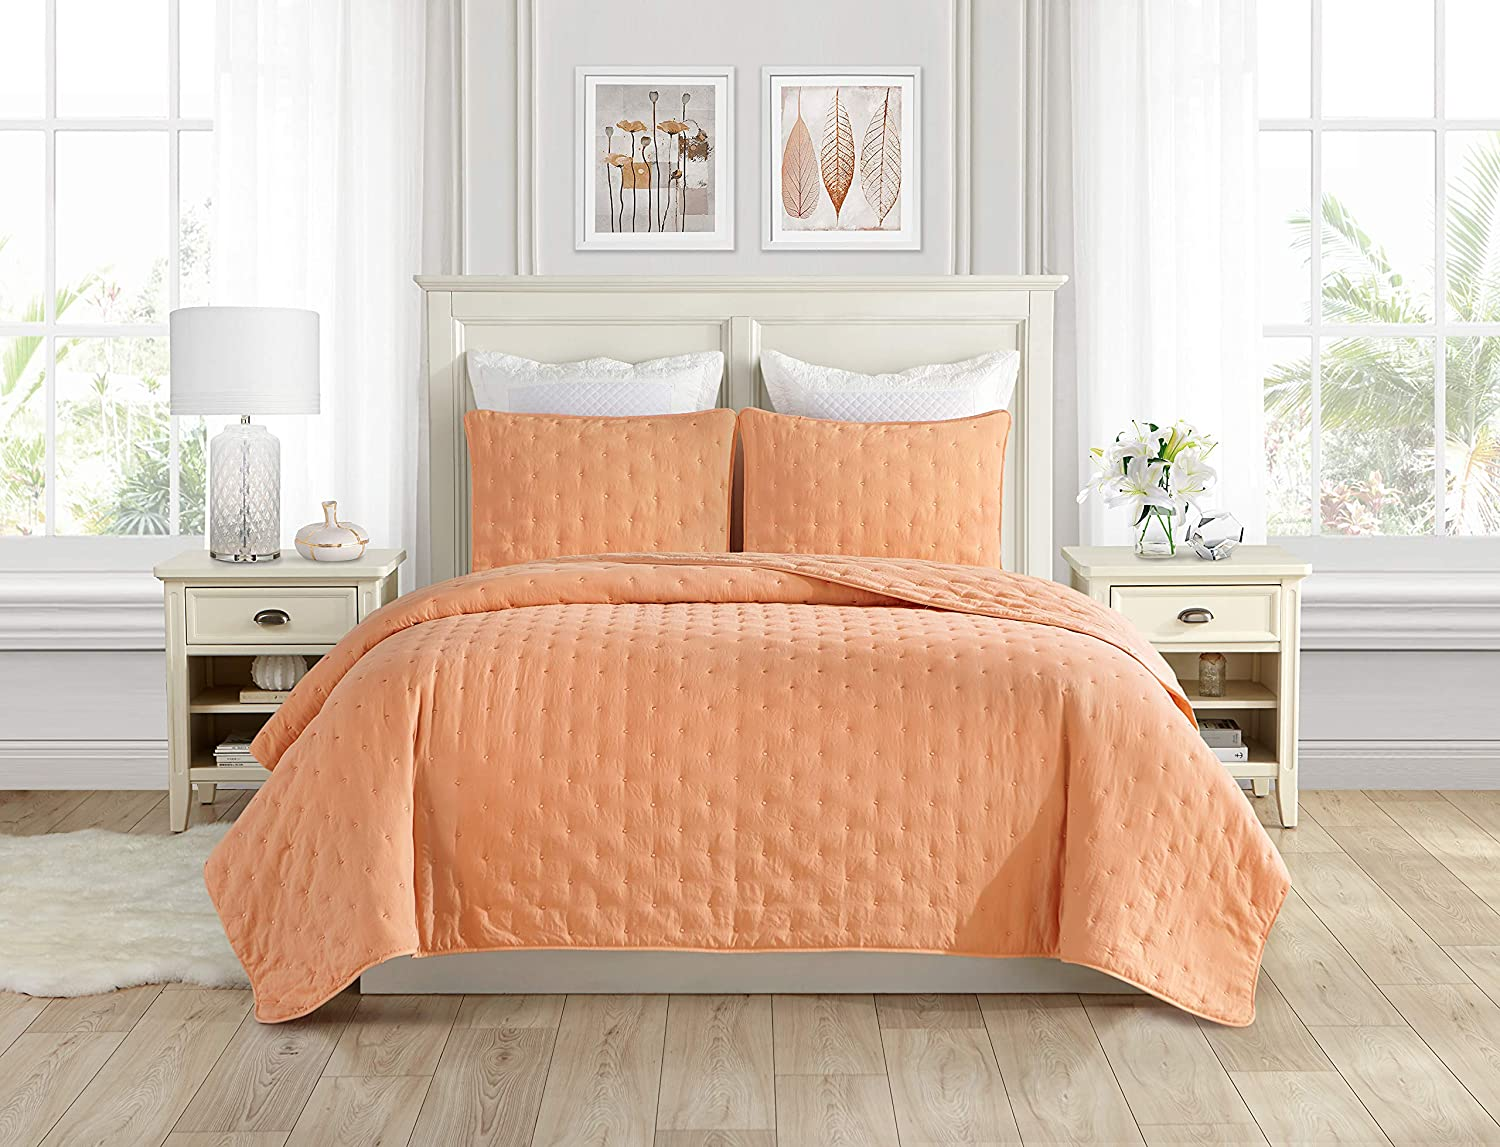 Swift Home Premium Bedding Set Collection 3pc Pre-Washed Quilt Coverlet Bedspread, Ultra Soft Microfiber Lightweight, Hypoallergenic Luxurious Oversized Quilt Bed Set All Season - King, Peach